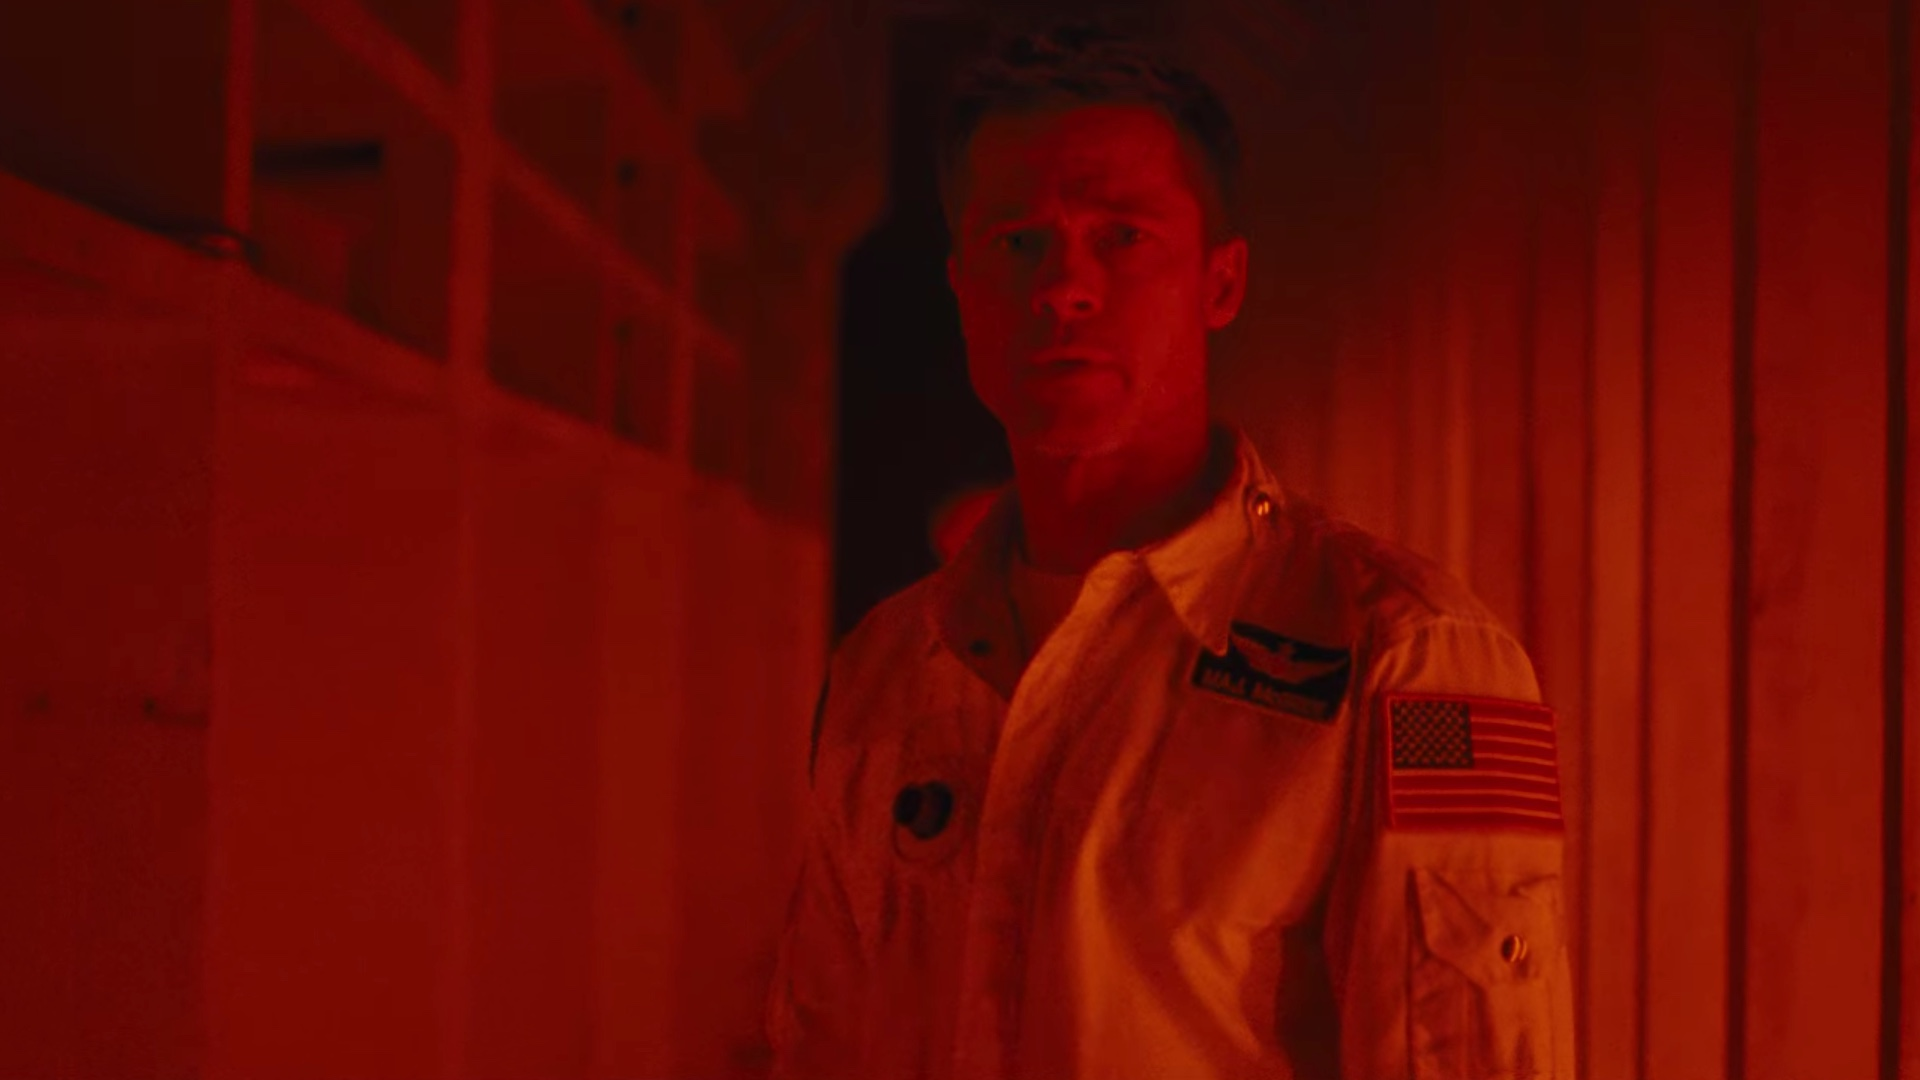 brad-pitt-embarks-on-a-space-mission-to-find-tommy-lee-jones-in-first-trailer-for-as-astra-social.jpg